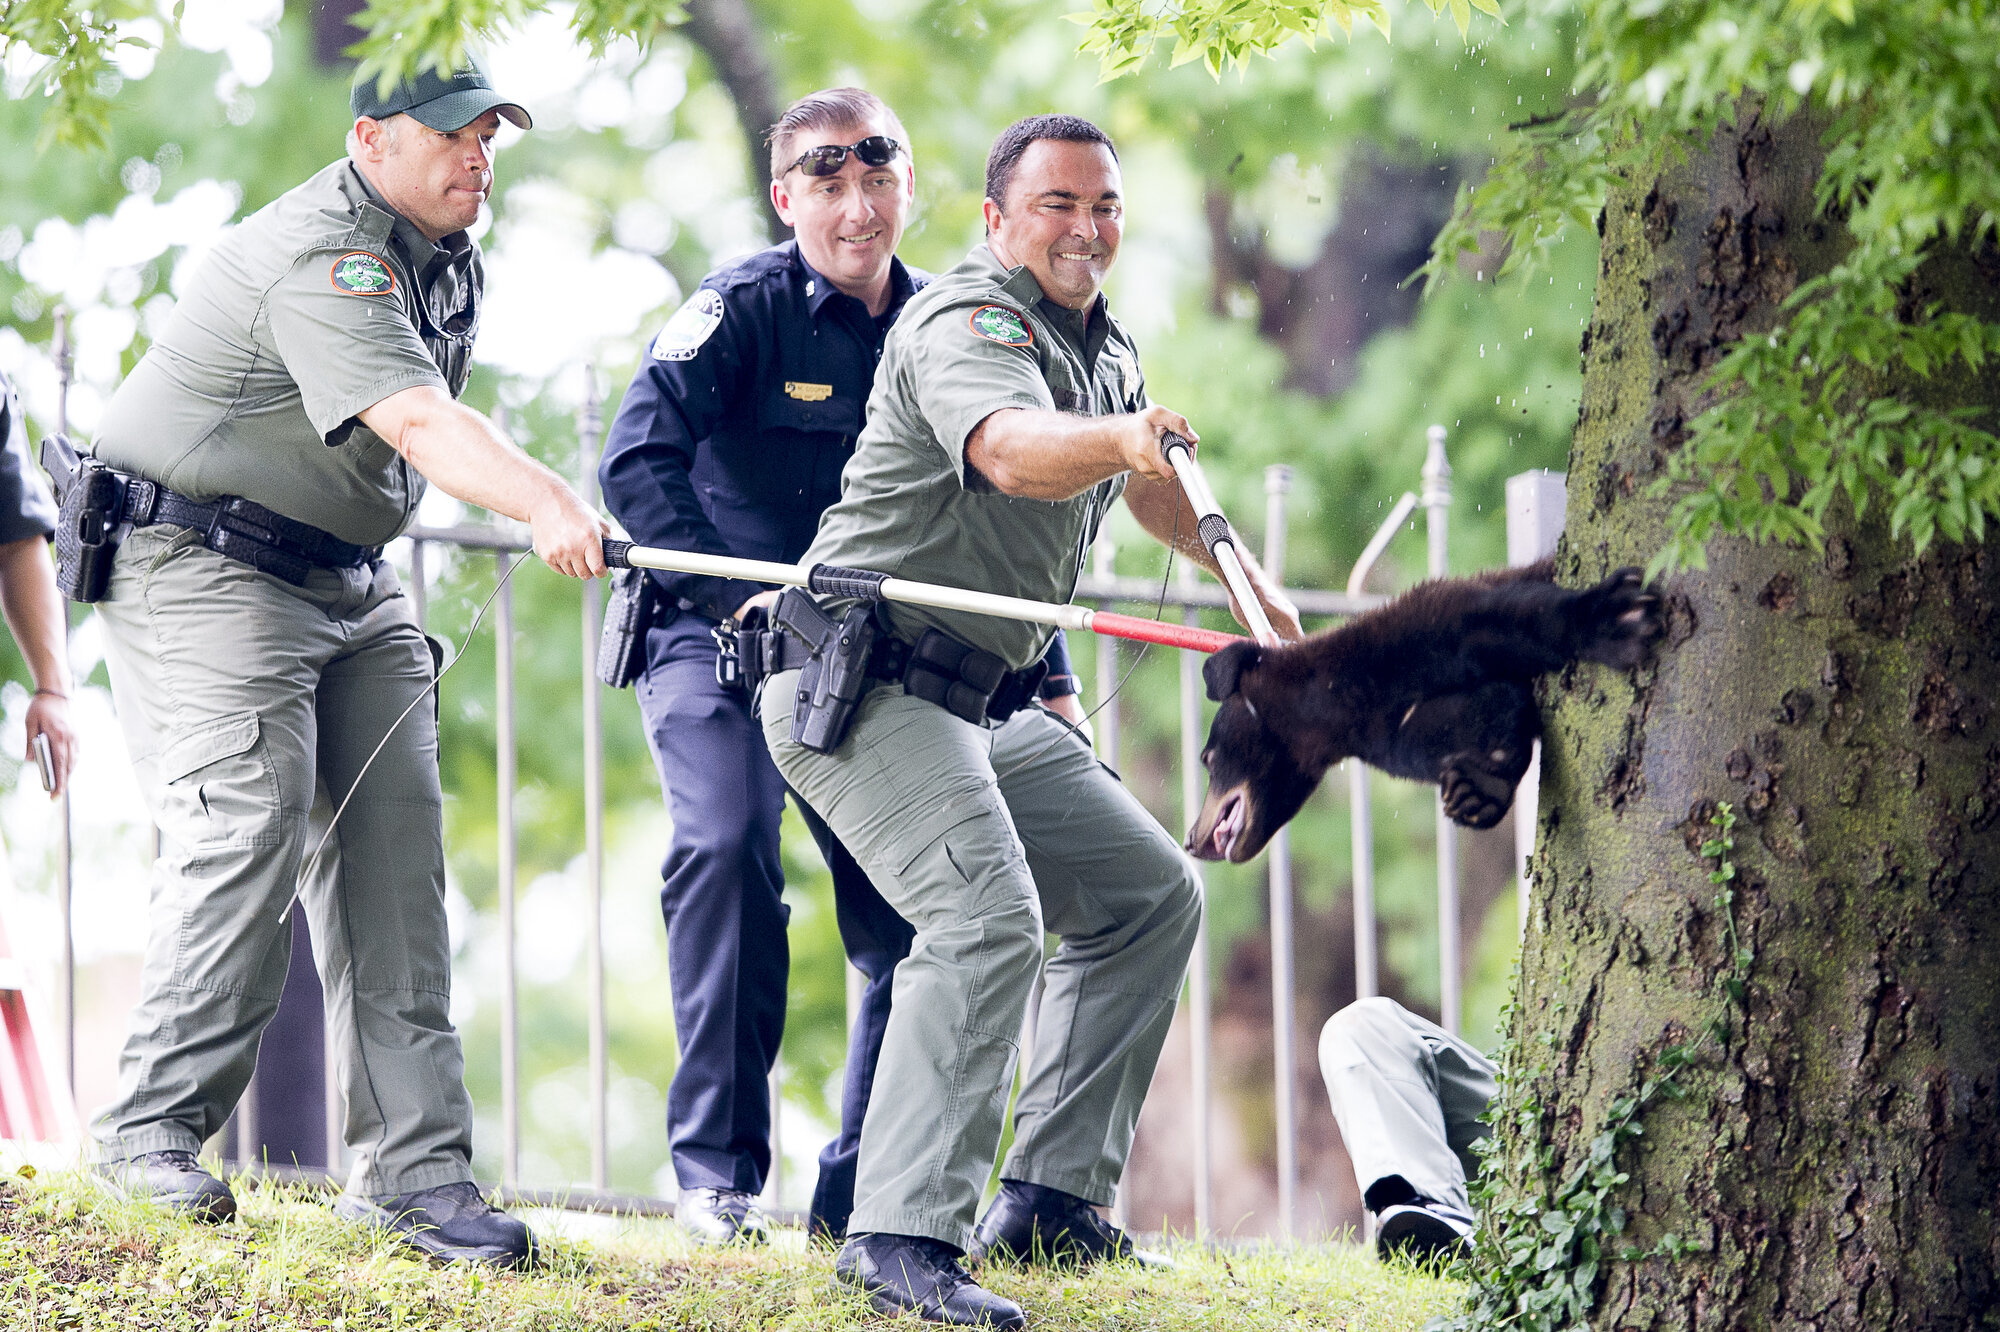 TWRA Sergeant Roy Smith, right, Knoxville Police officer Michael Cooper, and Clint Smith pull a small yearling black bear with catch pole from a tree after it was tranquilized at Morningside Park in Knoxville. The 100-pound yearling black bear was most likely displaced by its mother and wandered into the city in search for food, said a TWRA Sergeant Roy Smith.